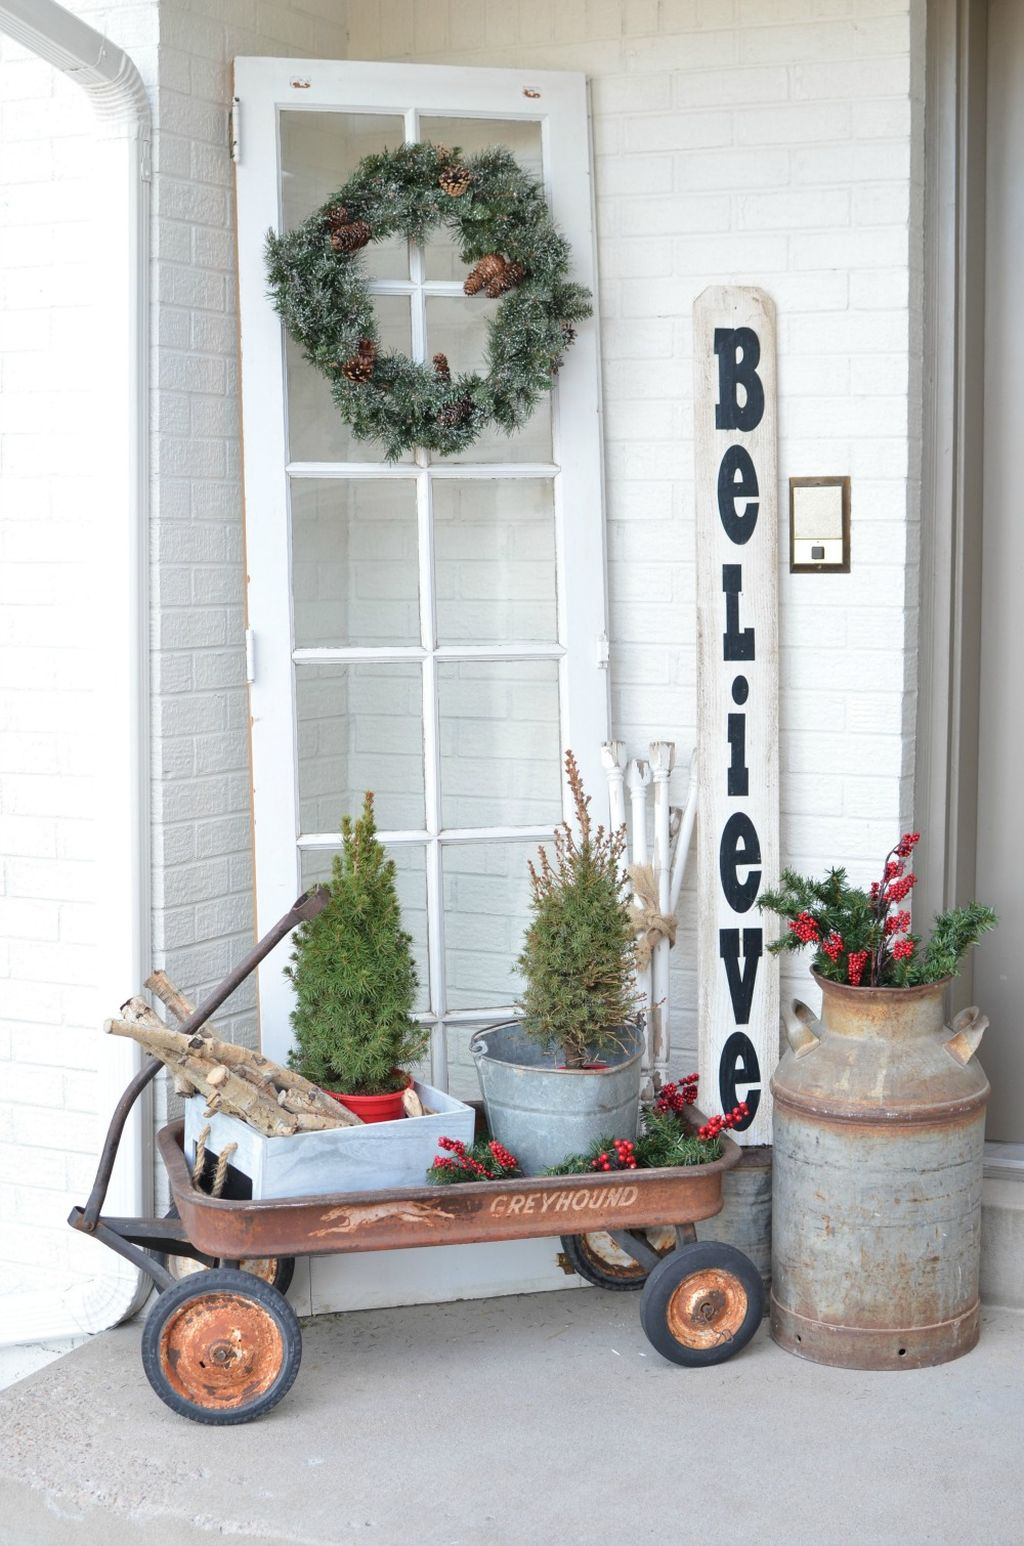 Incredible Rustic Farmhouse Christmas Decoration Ideas 35